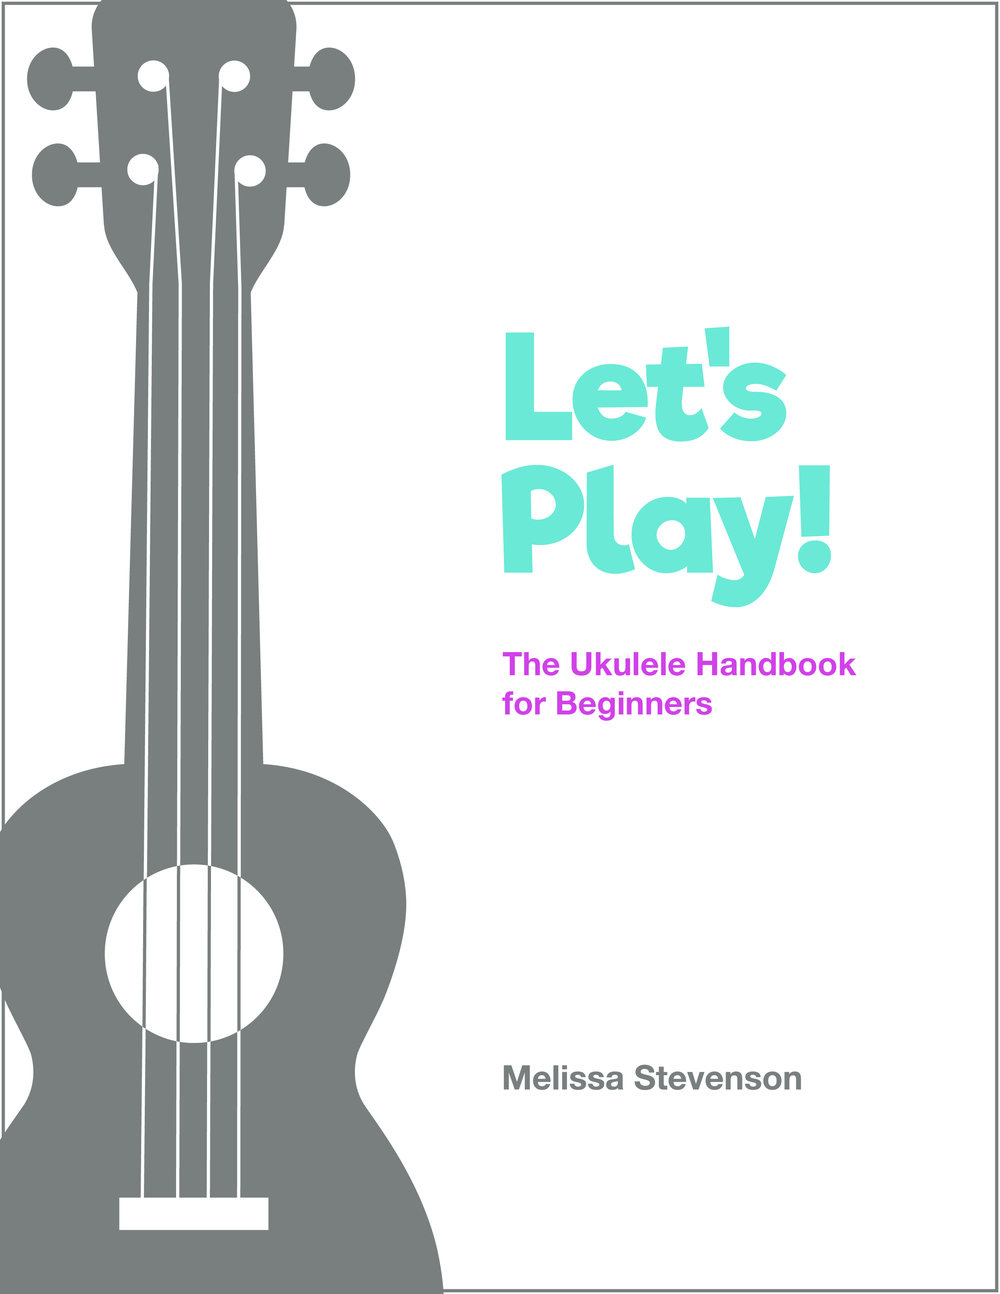 Lets Play_Front Book Cover with border.jpg